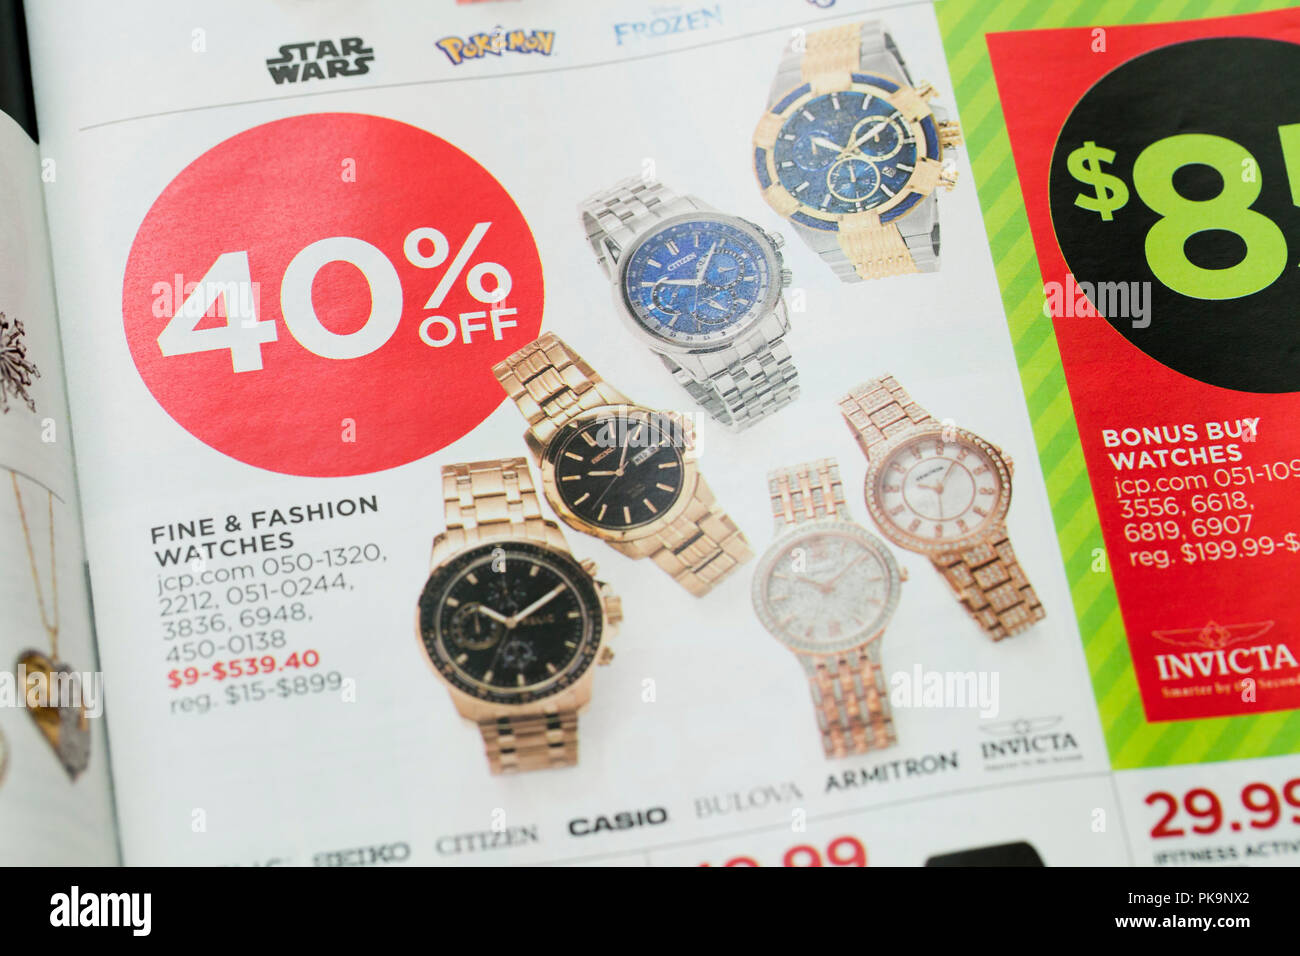 Wristwatch sale advertisement in weekly mailer - USA - Stock Image